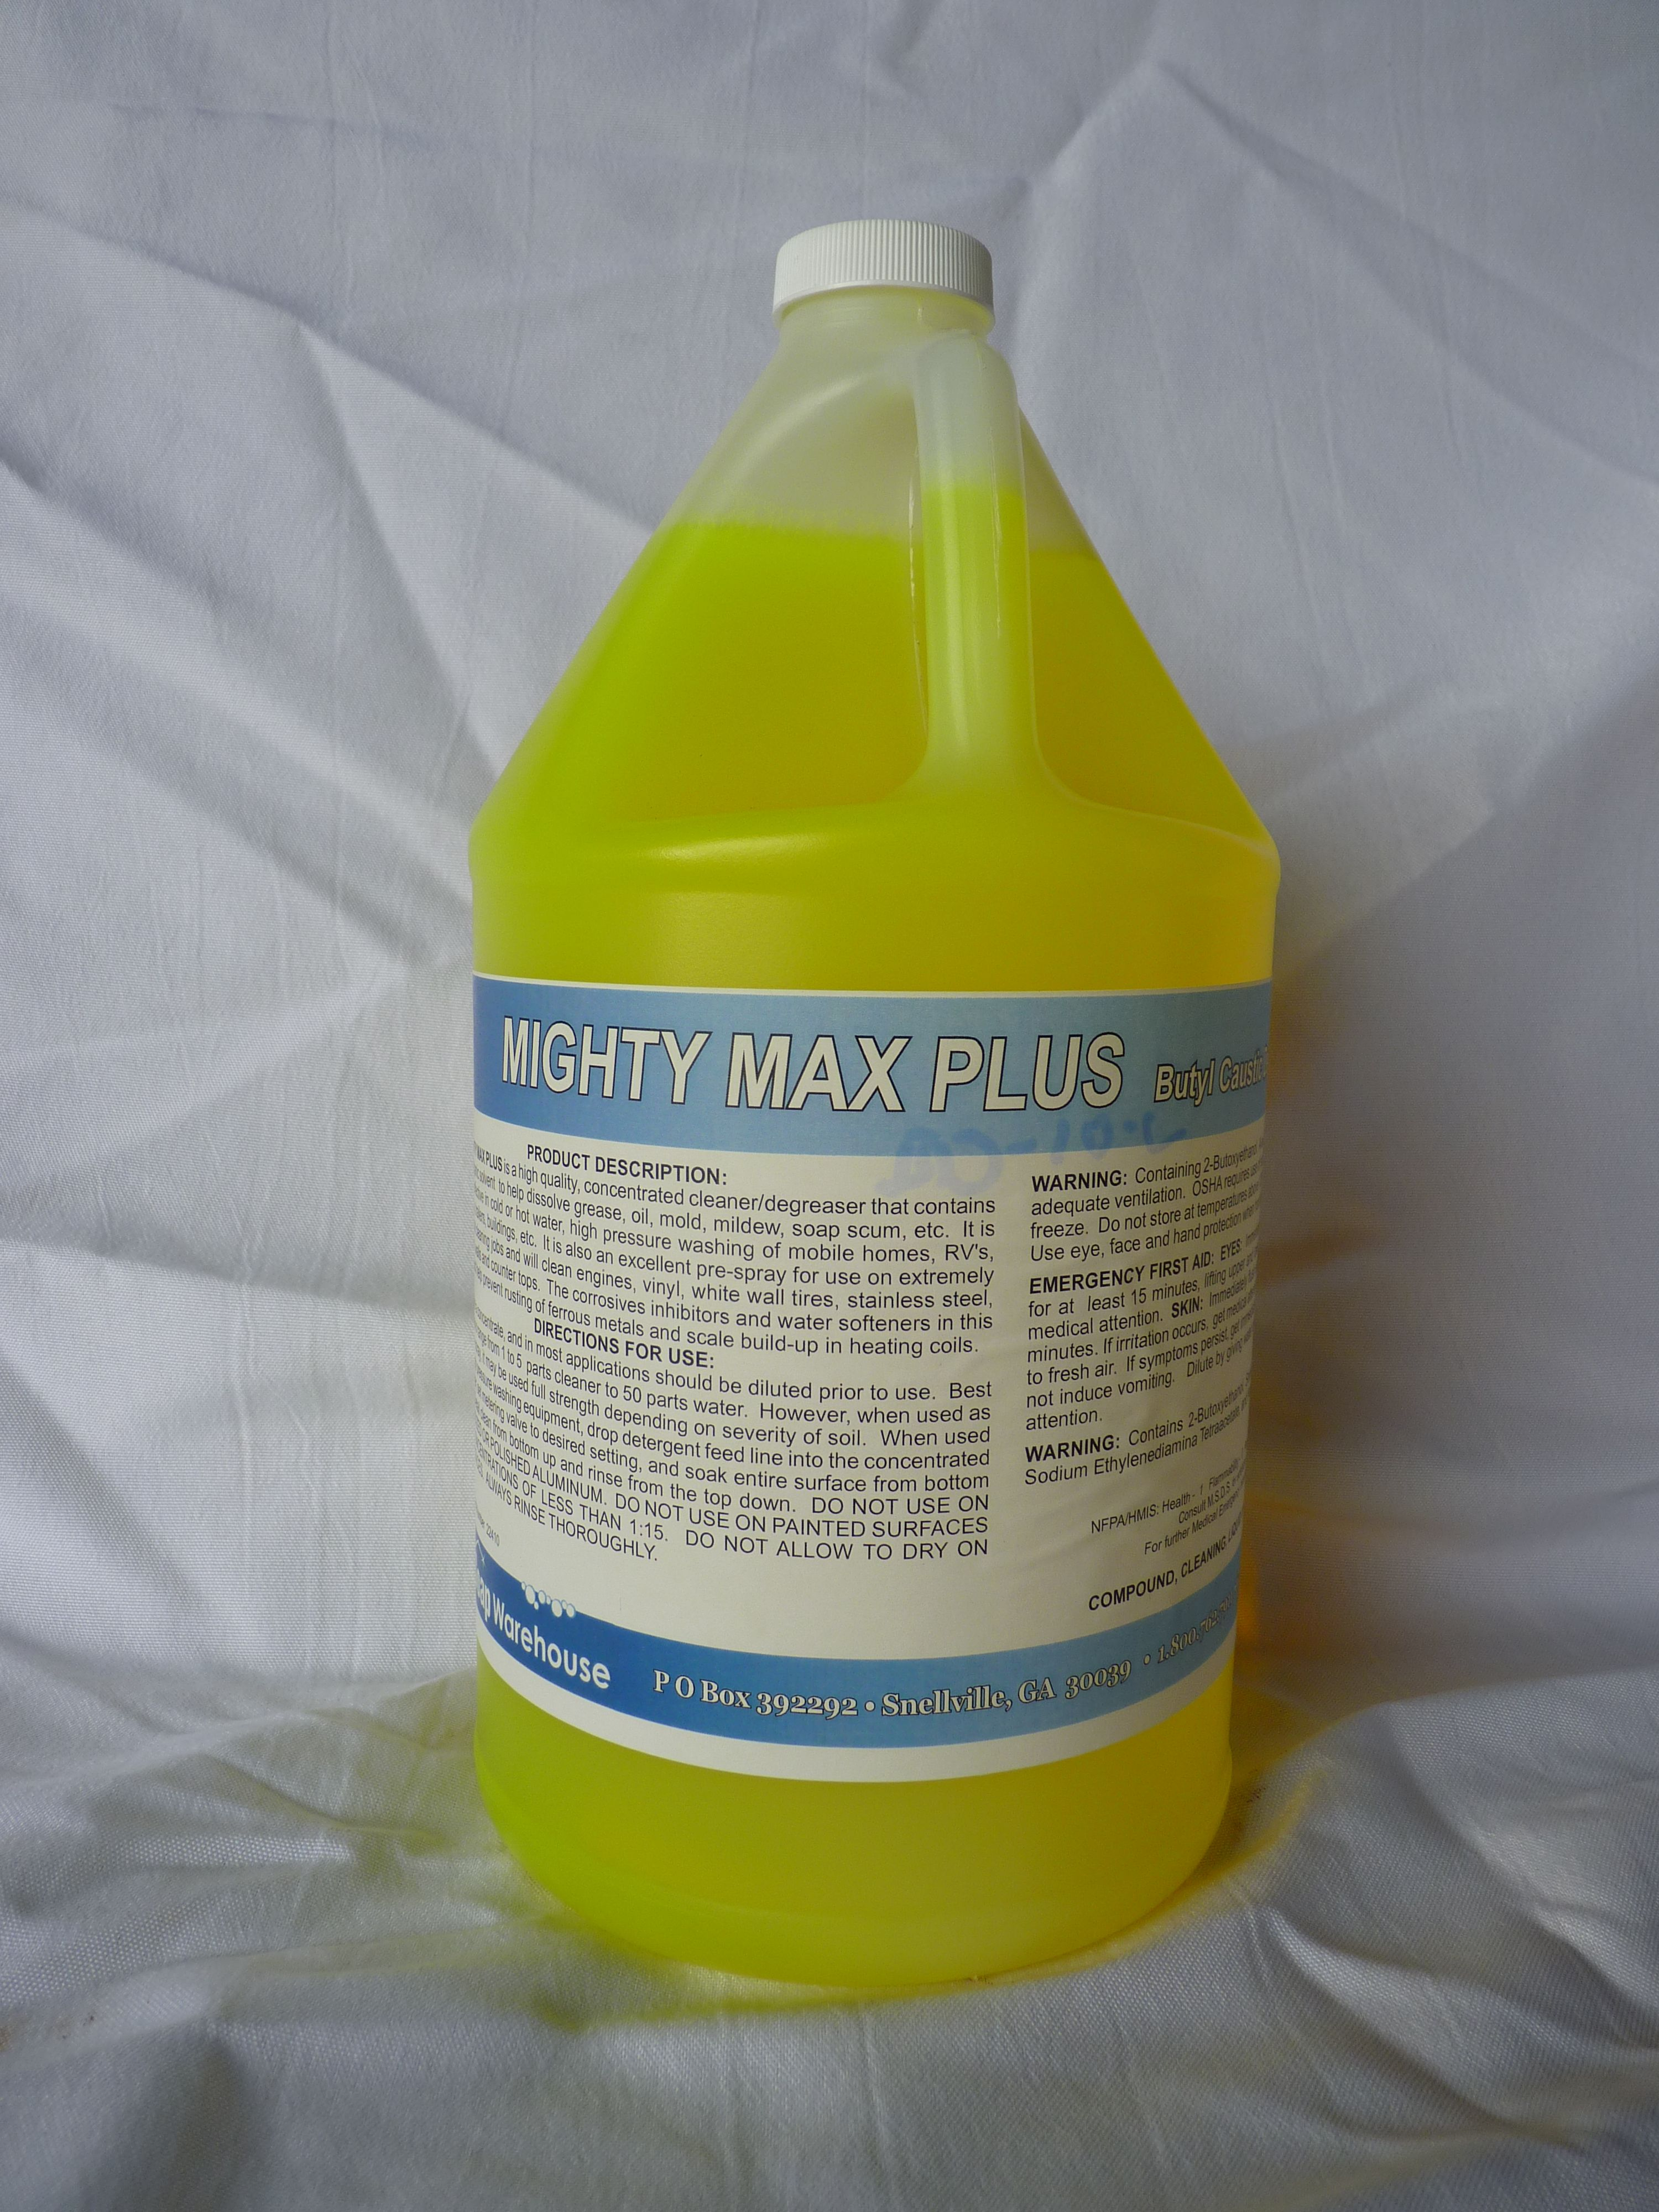 Mighty Max Plus Stronger Than Might Max The Plus Is A Kick Of Sodium Hydroxide A Little Bit Of Caustic To Get Heavy Cleaning Done Gutters Cleaning Degreasers